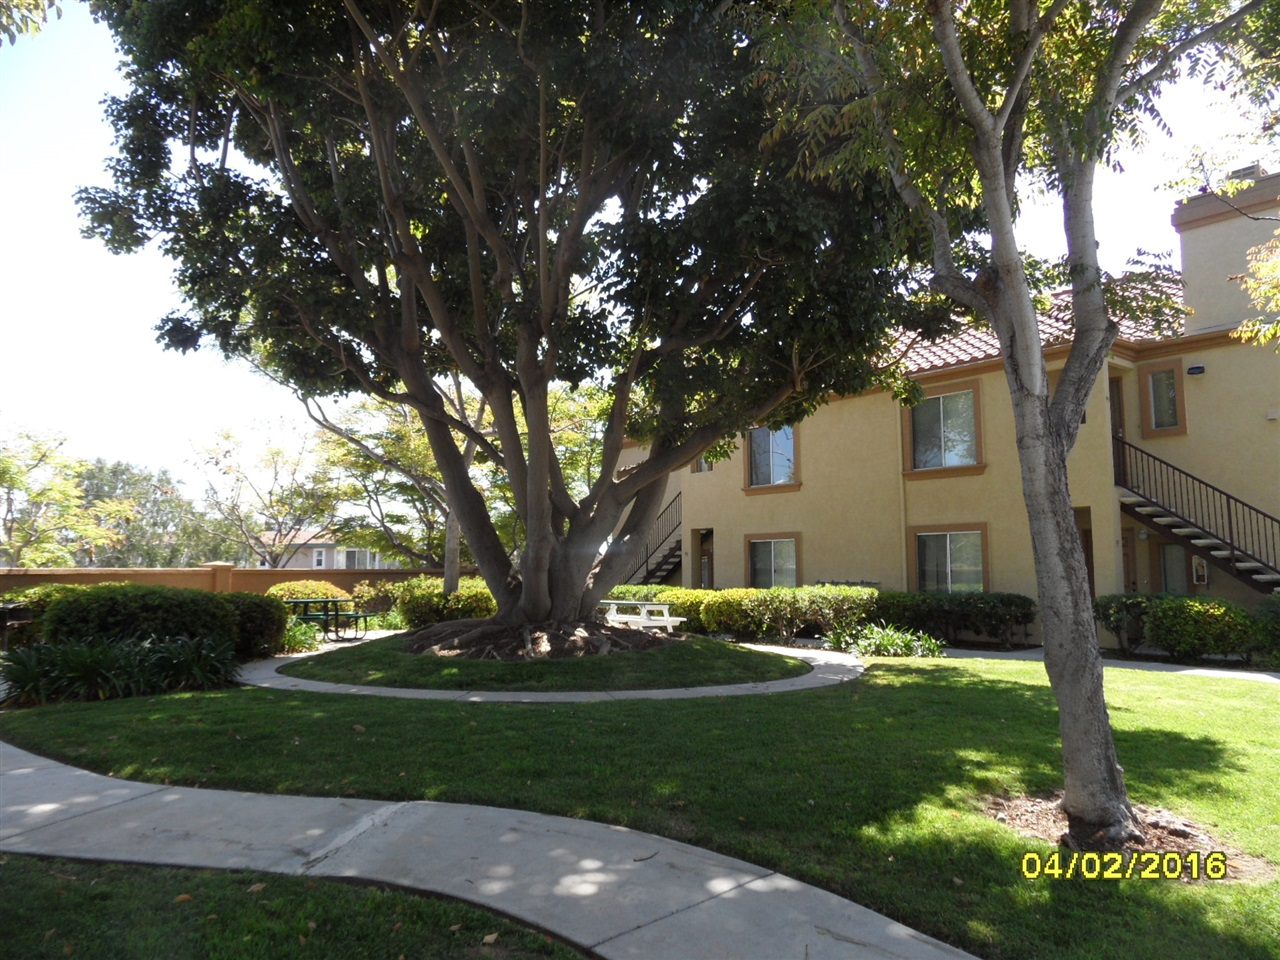 Photo 20: LINDA VISTA Condo for sale : 3 bedrooms : 2012 Coolidge St #93 in San Diego